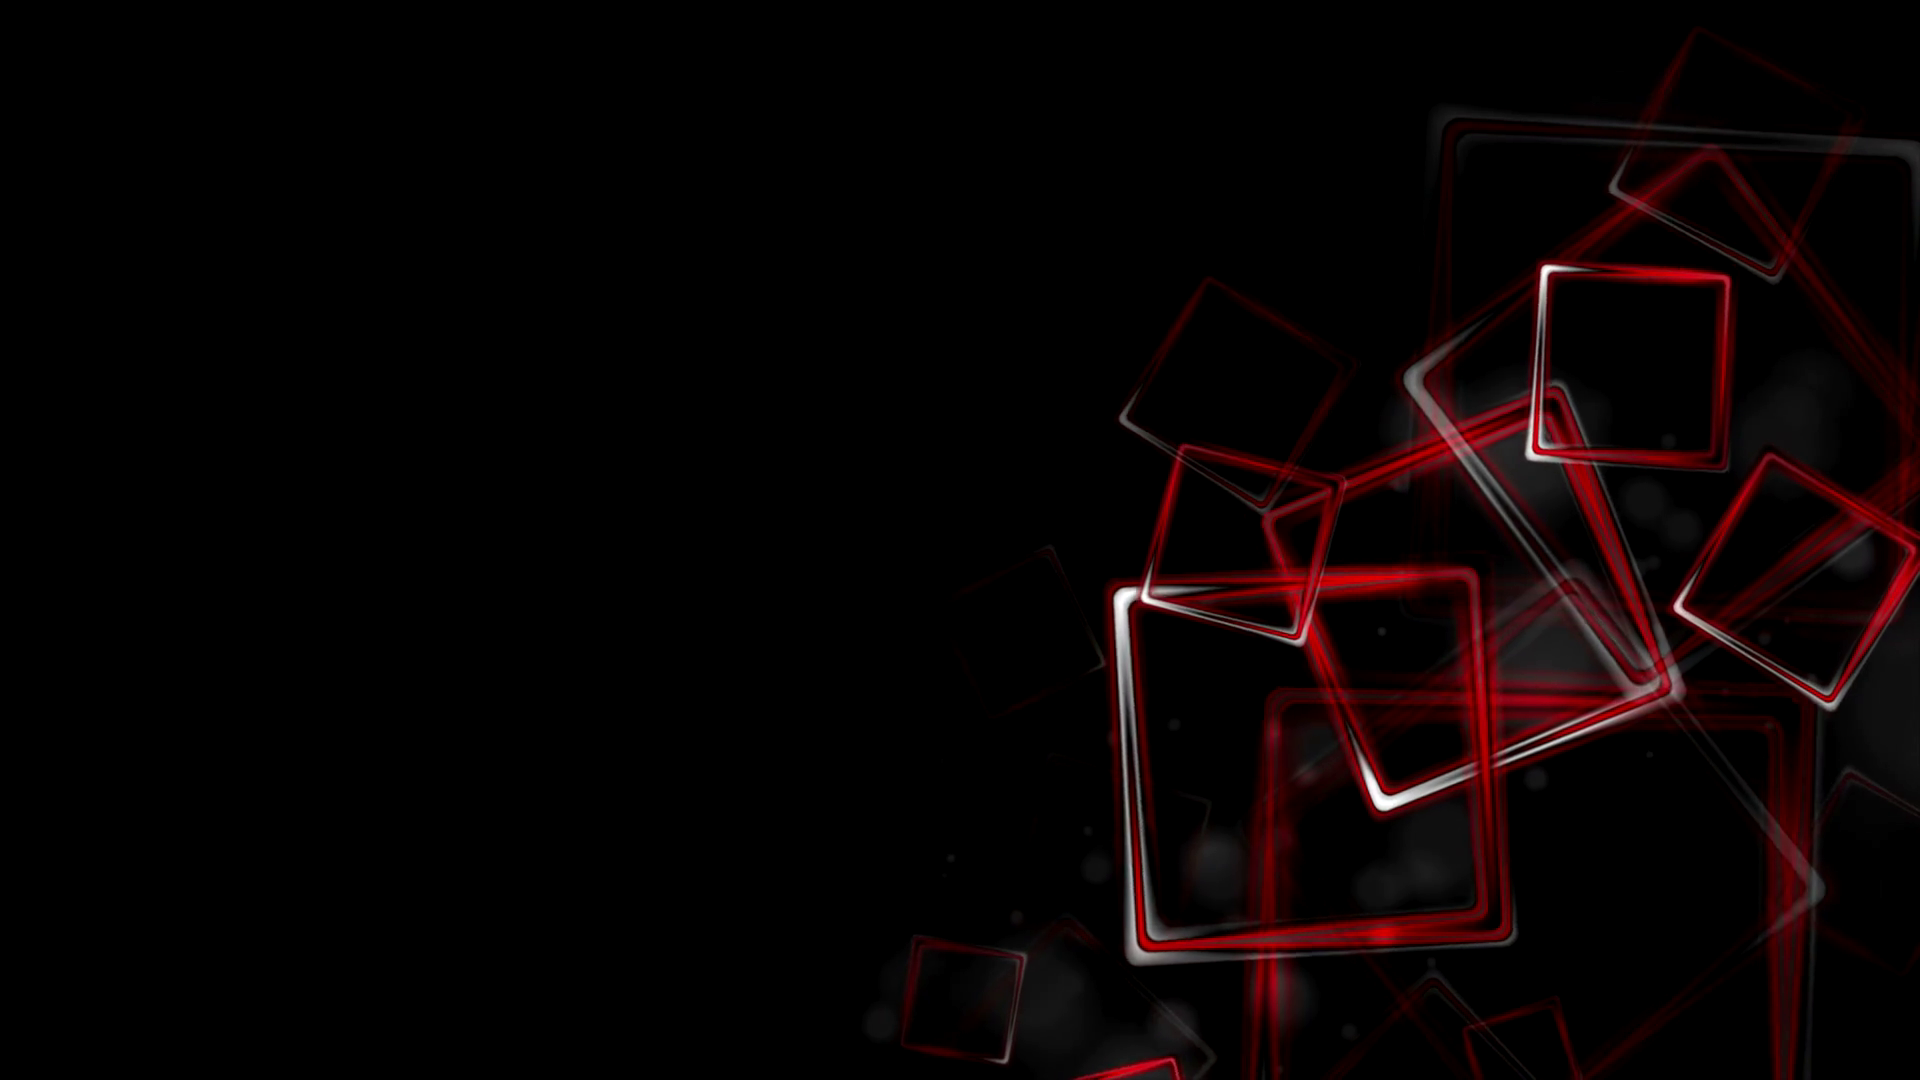 Dark Red Glossy Squares Abstract Motion Design 4k Black Ultra Hd Red And Black 1920x1080 Wallpaper Teahub Io